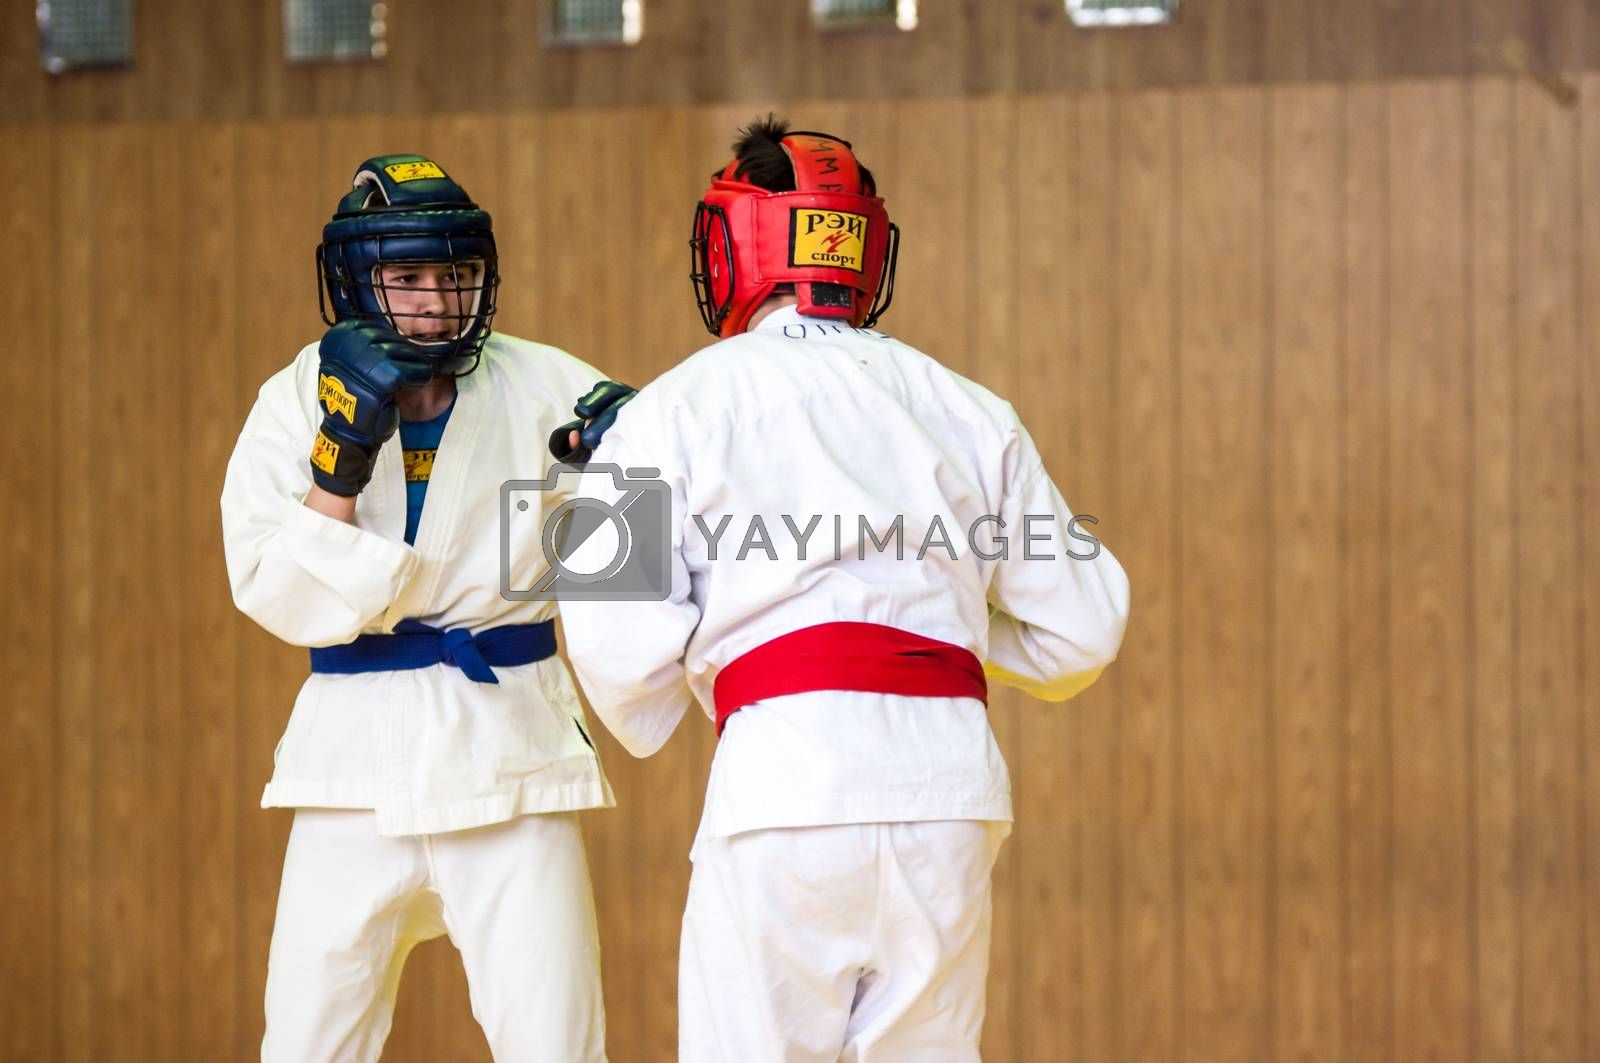 Orenburg, Russia - 14 May 2016: The boys compete for the cup of the city of Orenburg in hand-to-hand fight